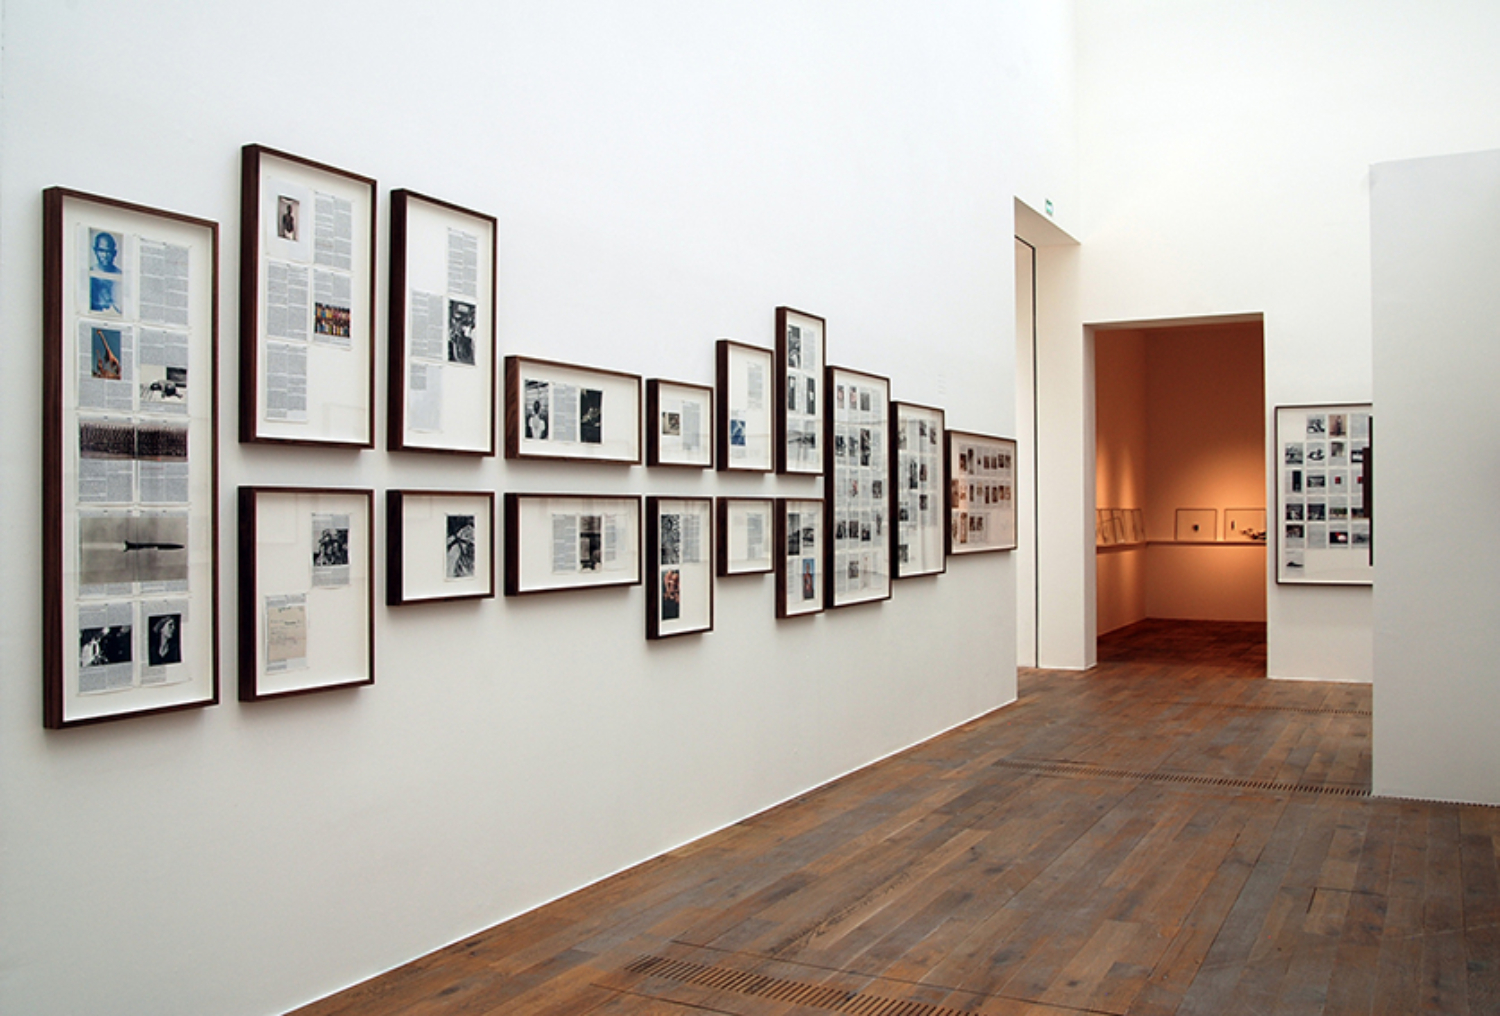 Divine Violence, MOSTYN, Wales, Installation View, 2014, Image © The Artists